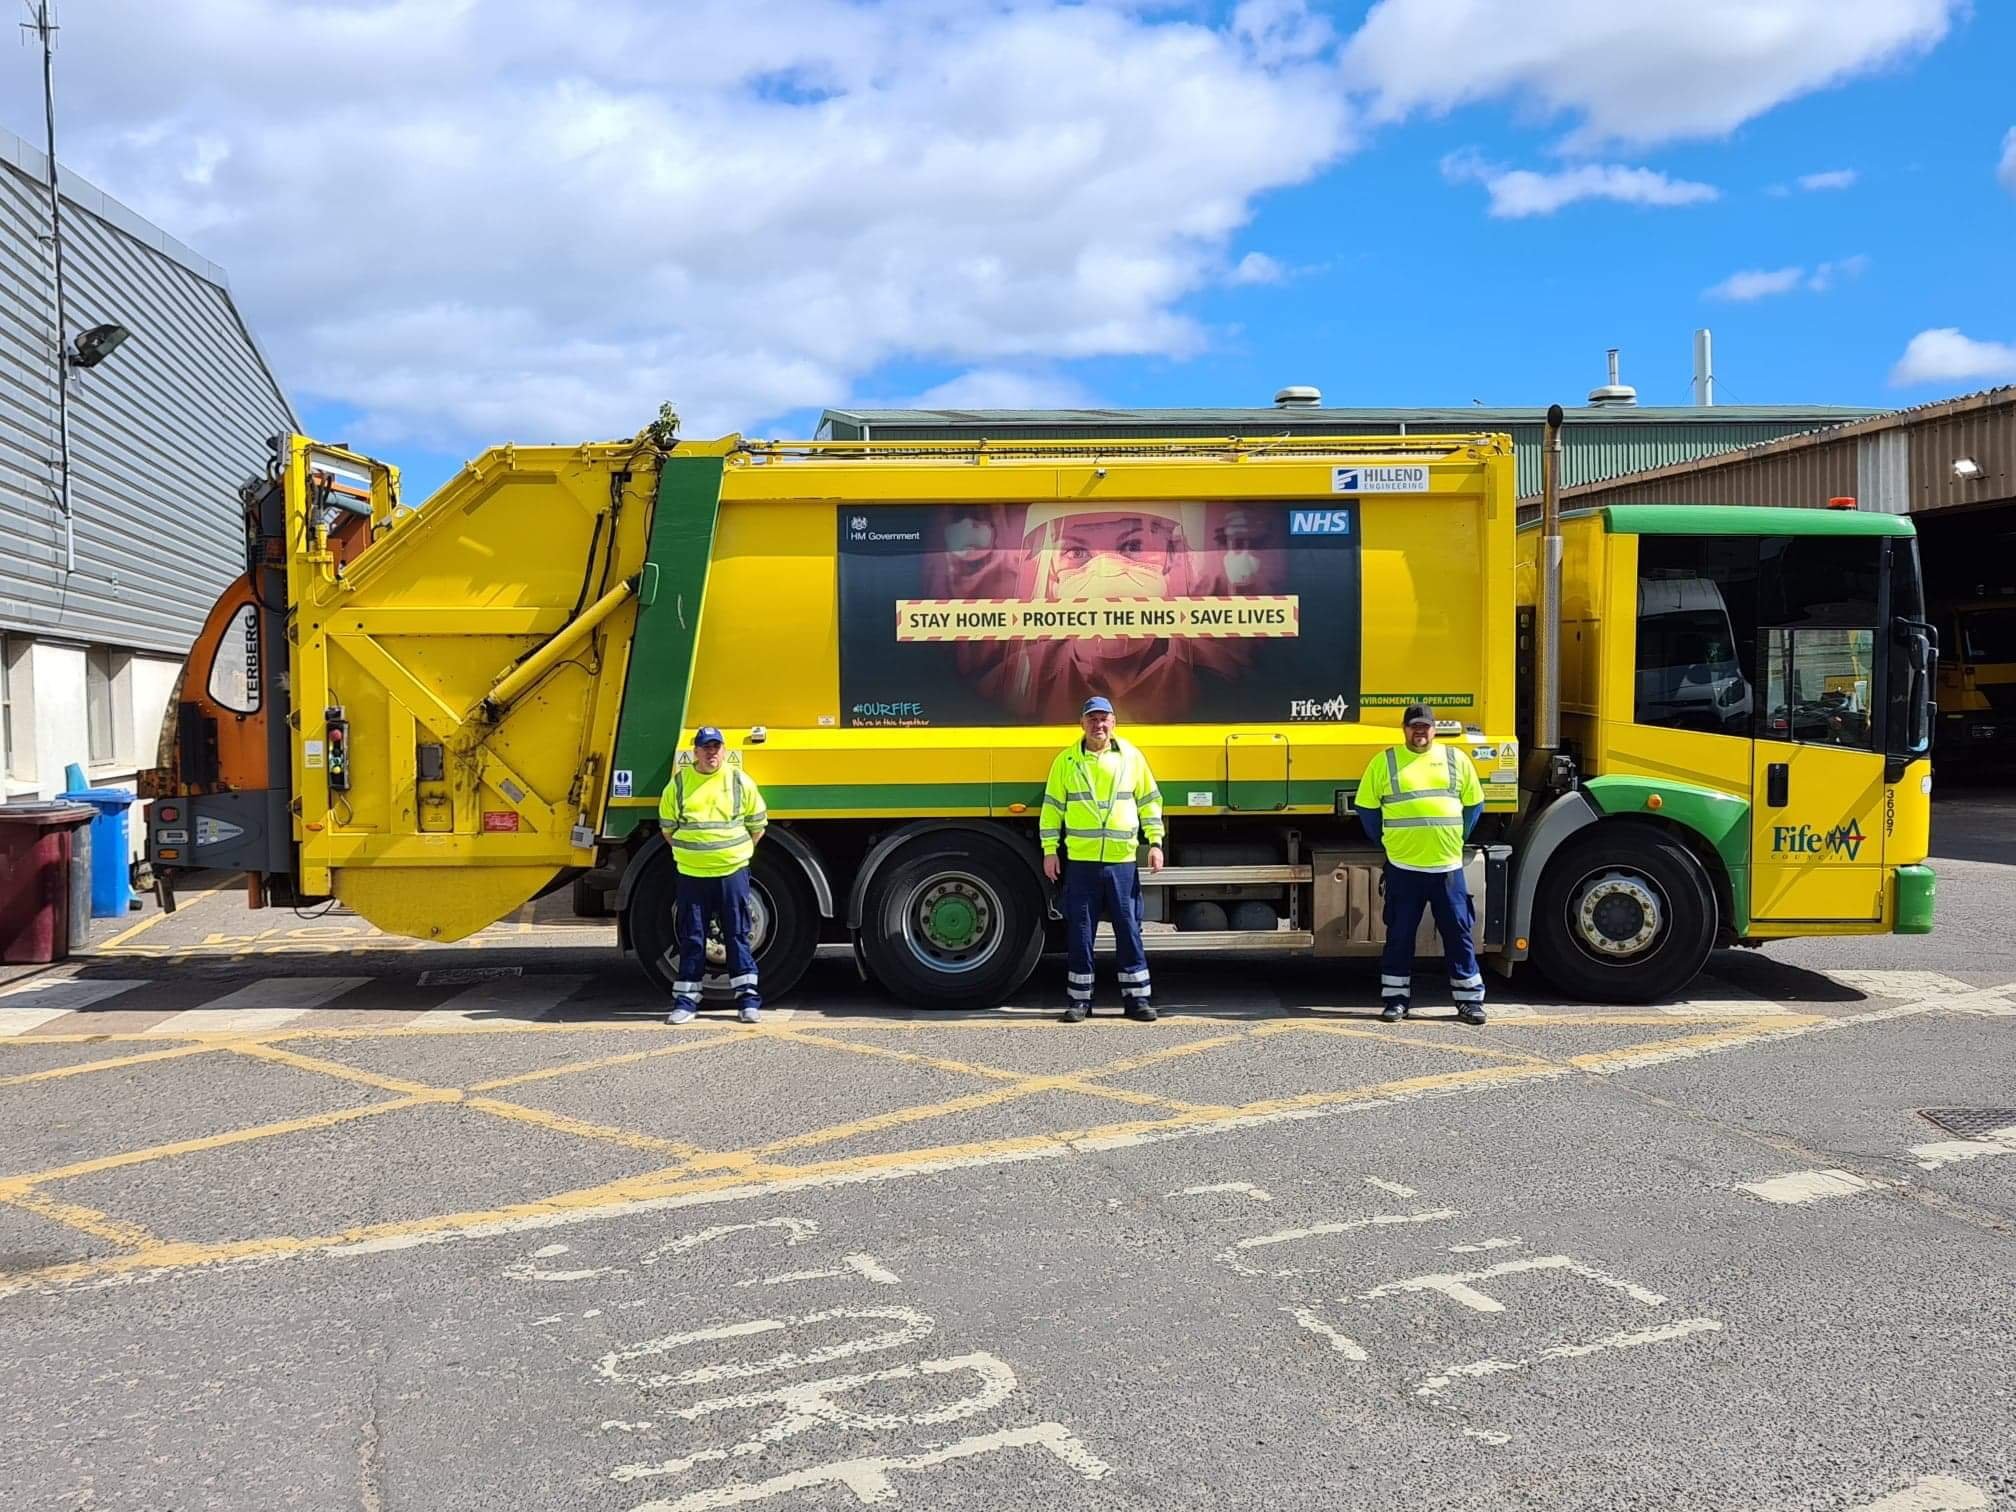 Bin crews across Fife are working in challenging circumstances but getting the 'Stay at Home' message out.